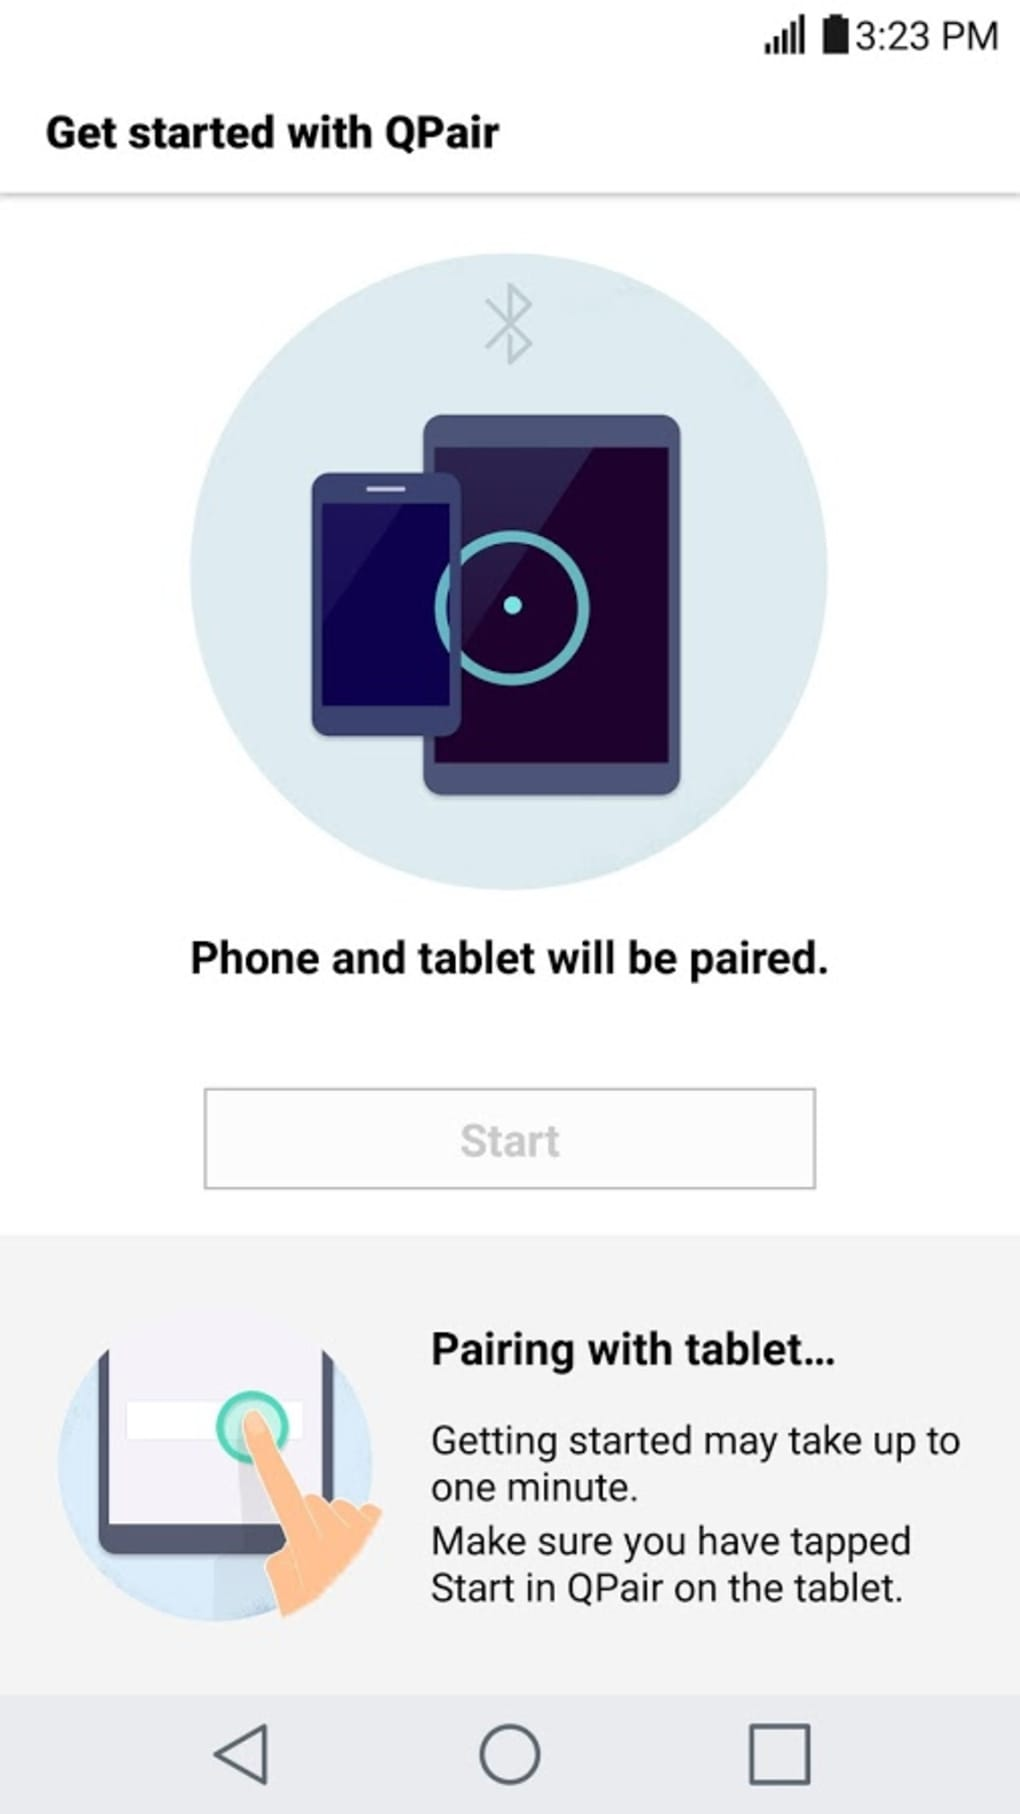 LG QPair for Android - Download